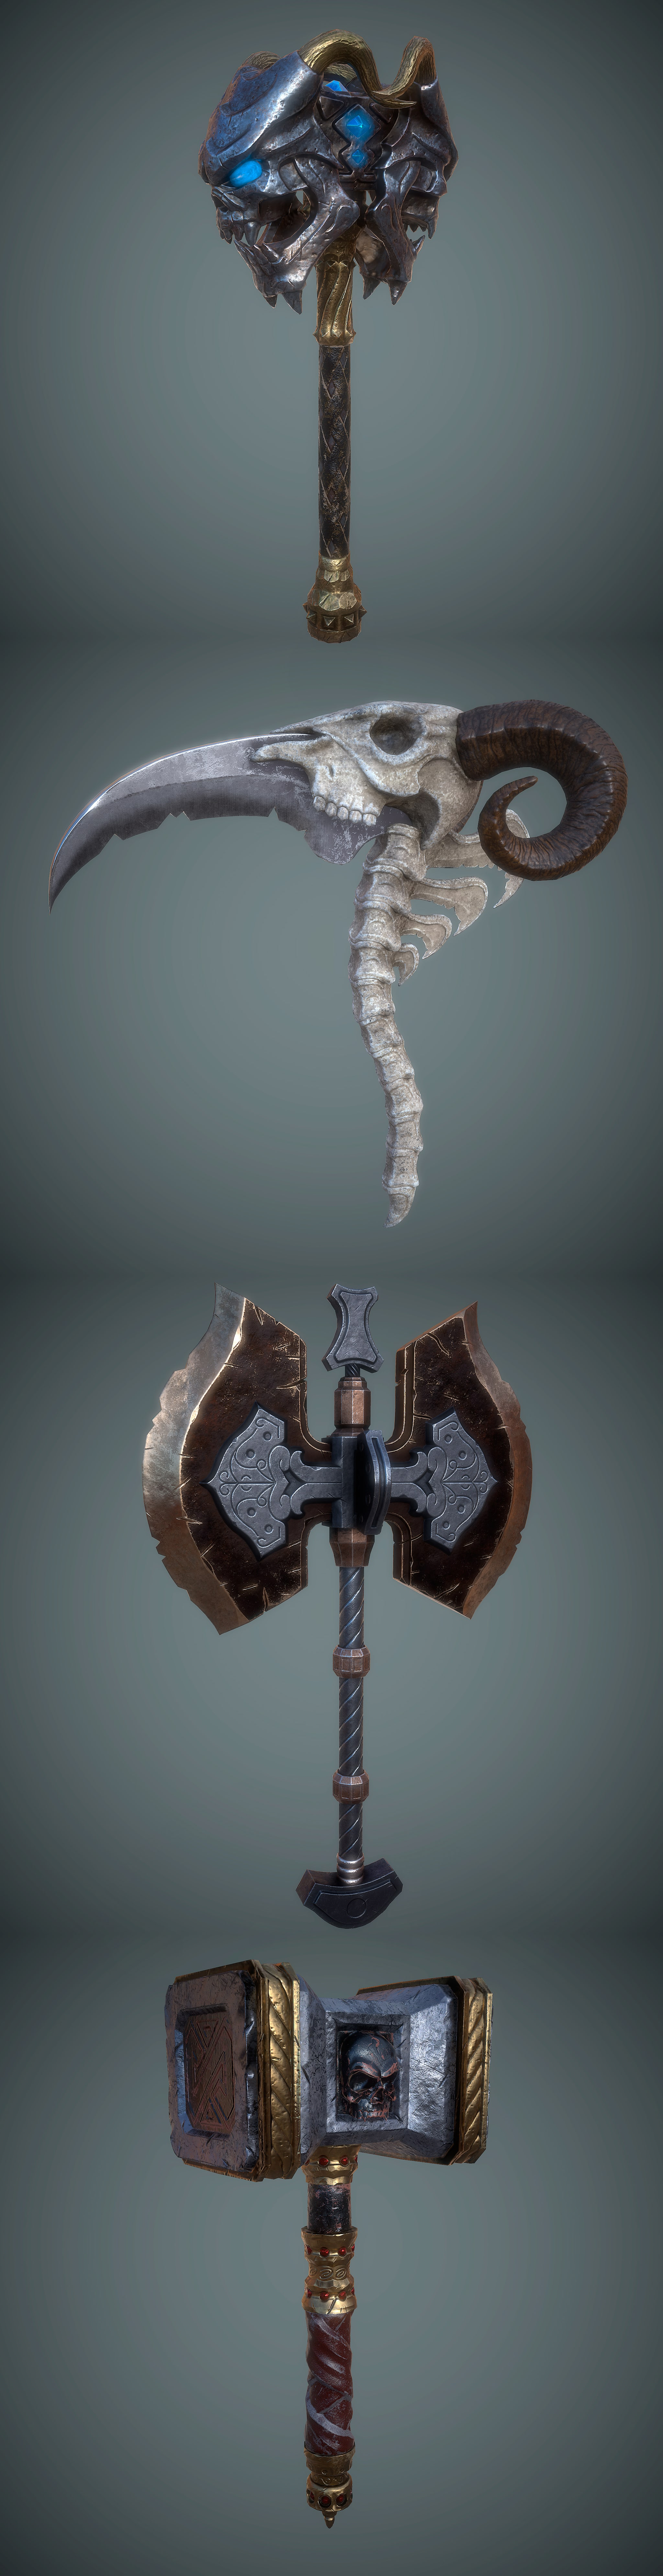 high-poly-3d-weapons-min